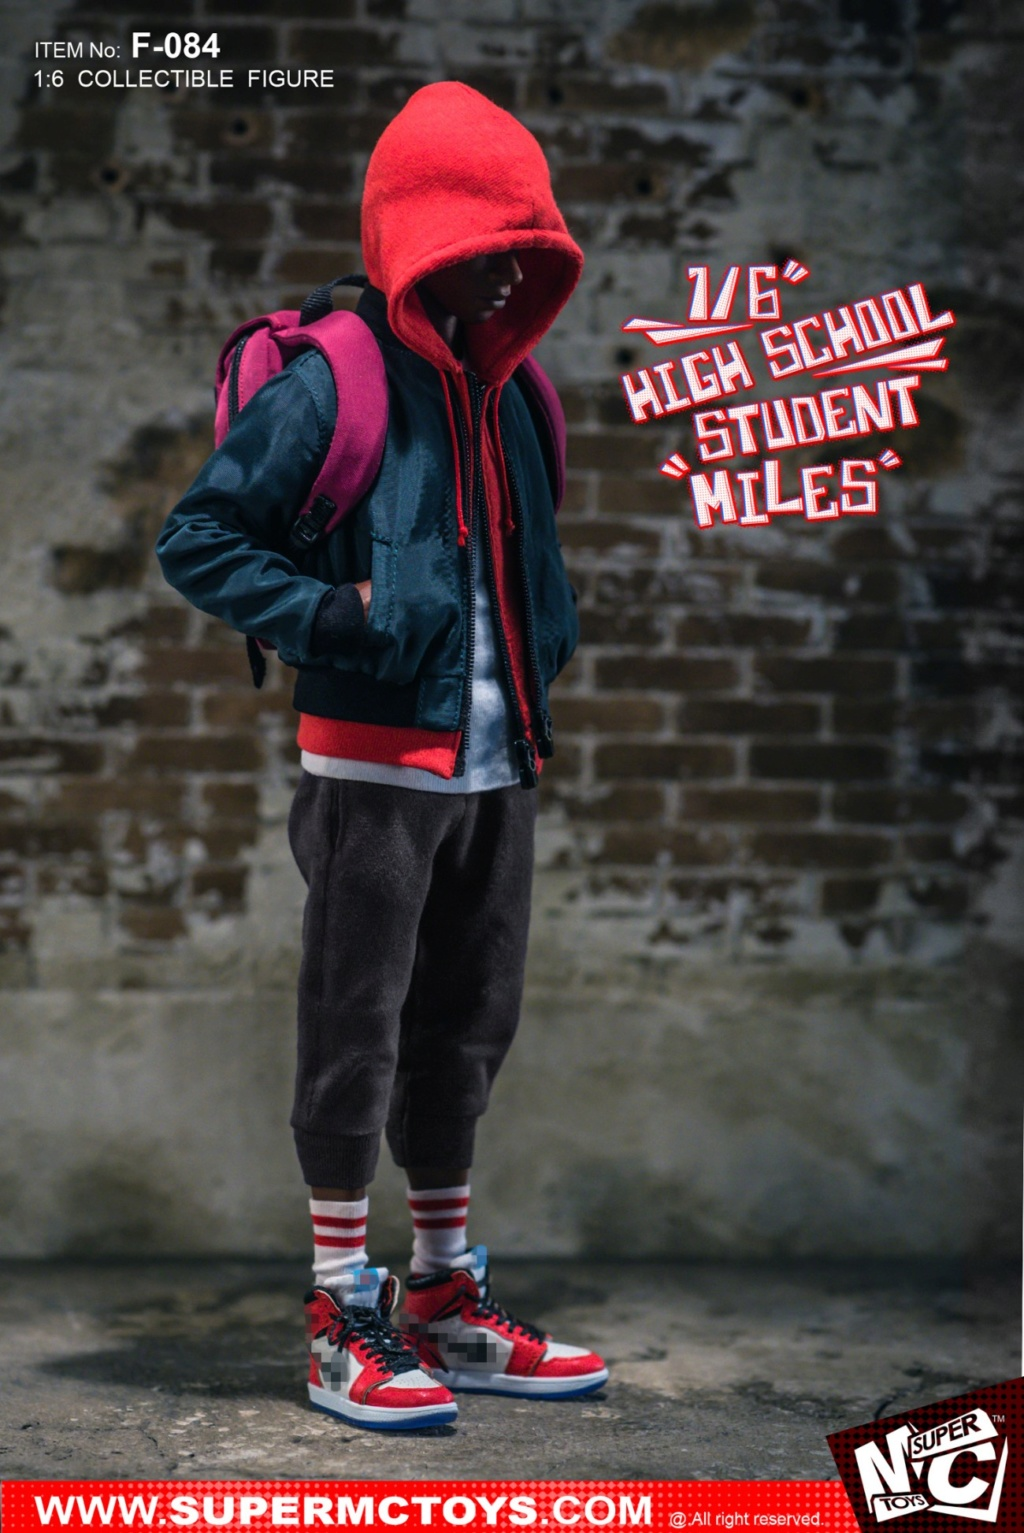 male - NEW PRODUCT: SUPERMCTOYS: 1/6 High School Students - Little Black Miles Miles Movable F-084# 19373210